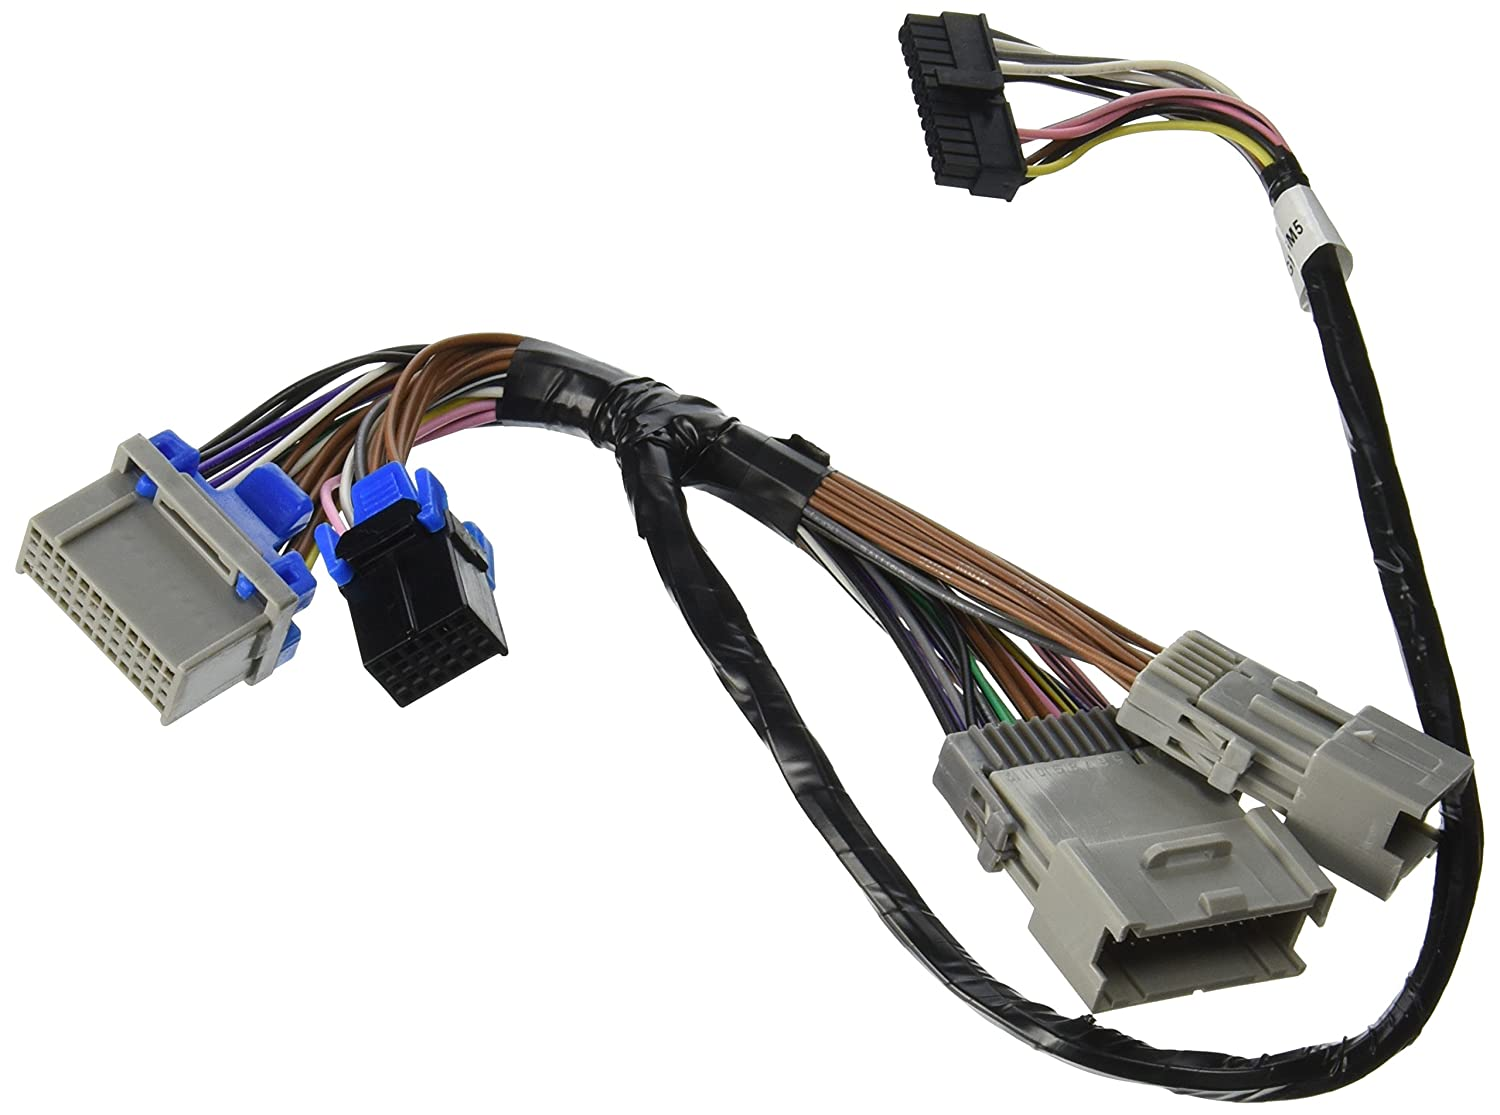 Peripheral Pghgm5 Pxamg Vehicle Harness For Gm Class 2 Wiring Vehicles Car Electronics